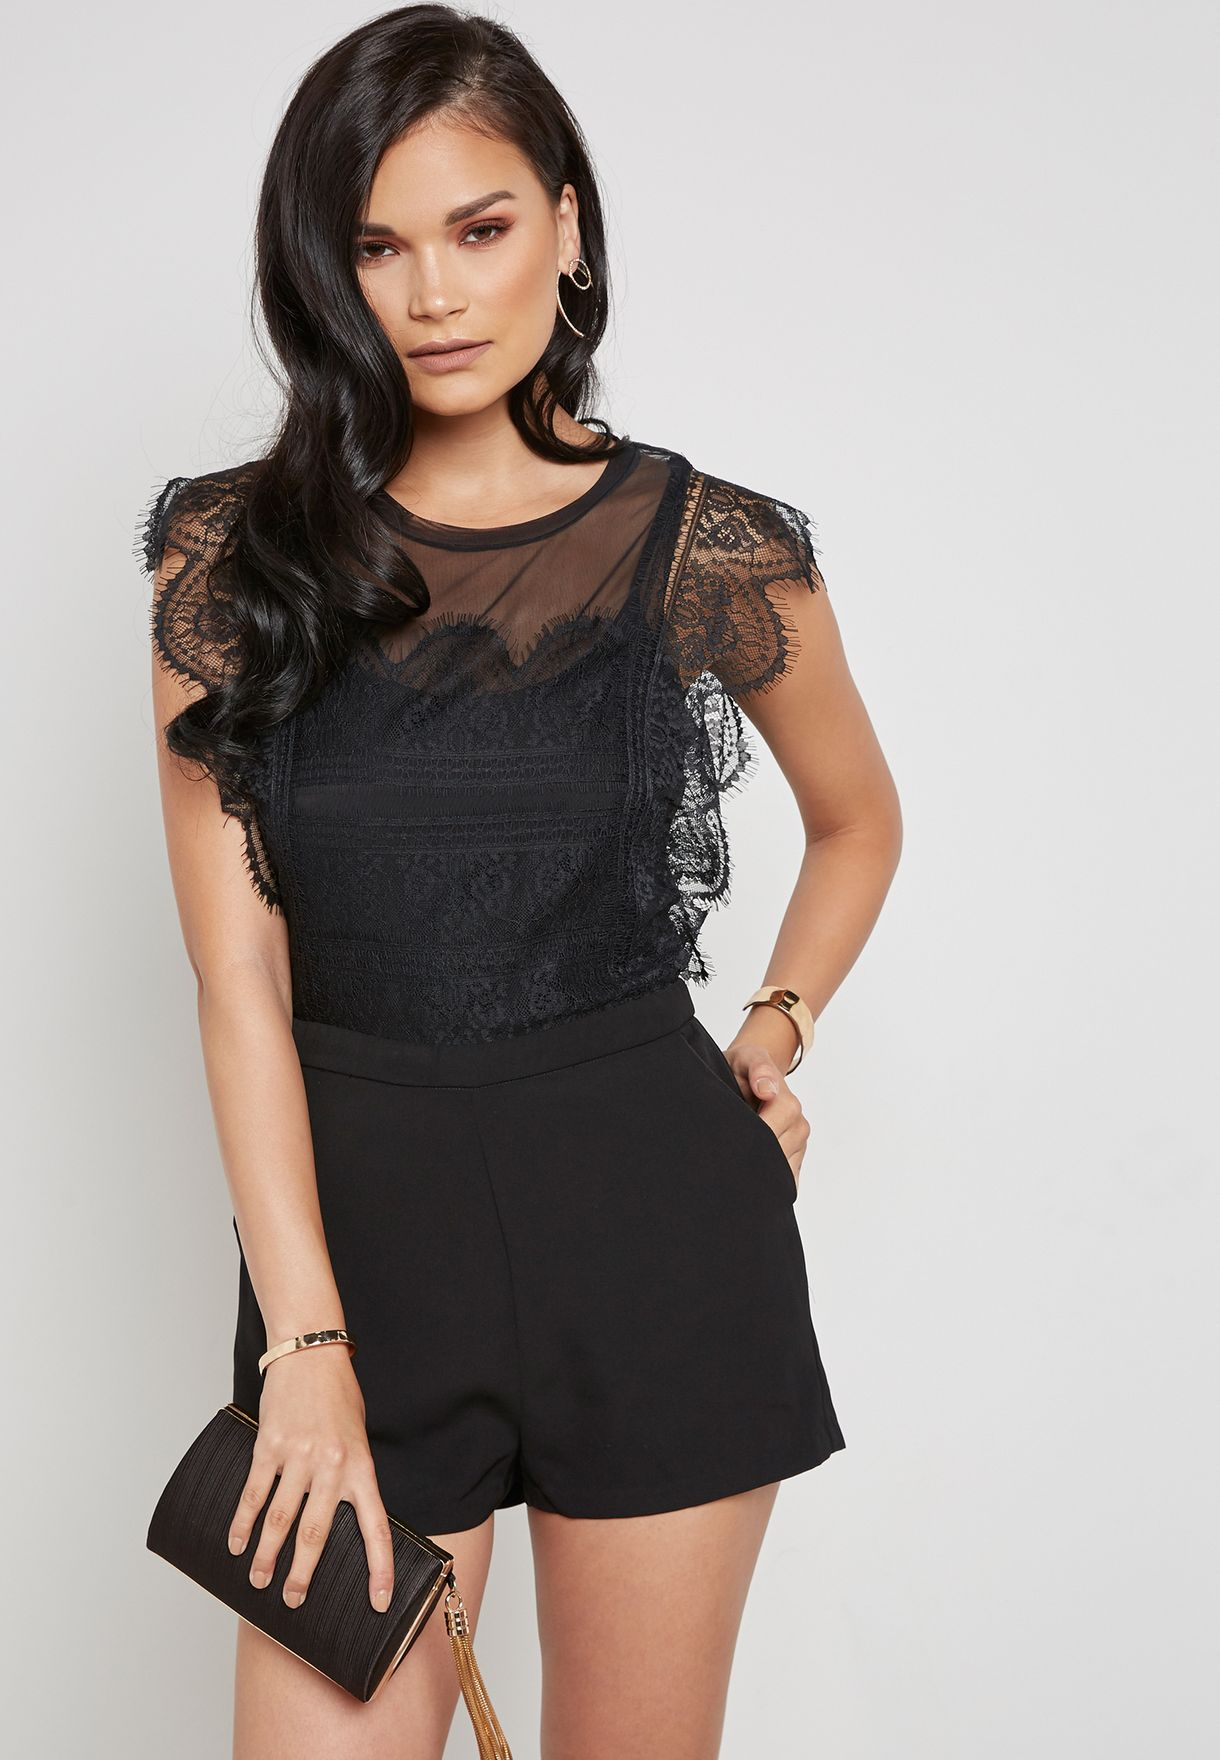 a9601f3c0dd Shop Only black Lace Scallop Detail Playsuit 15155980 for Women in ...